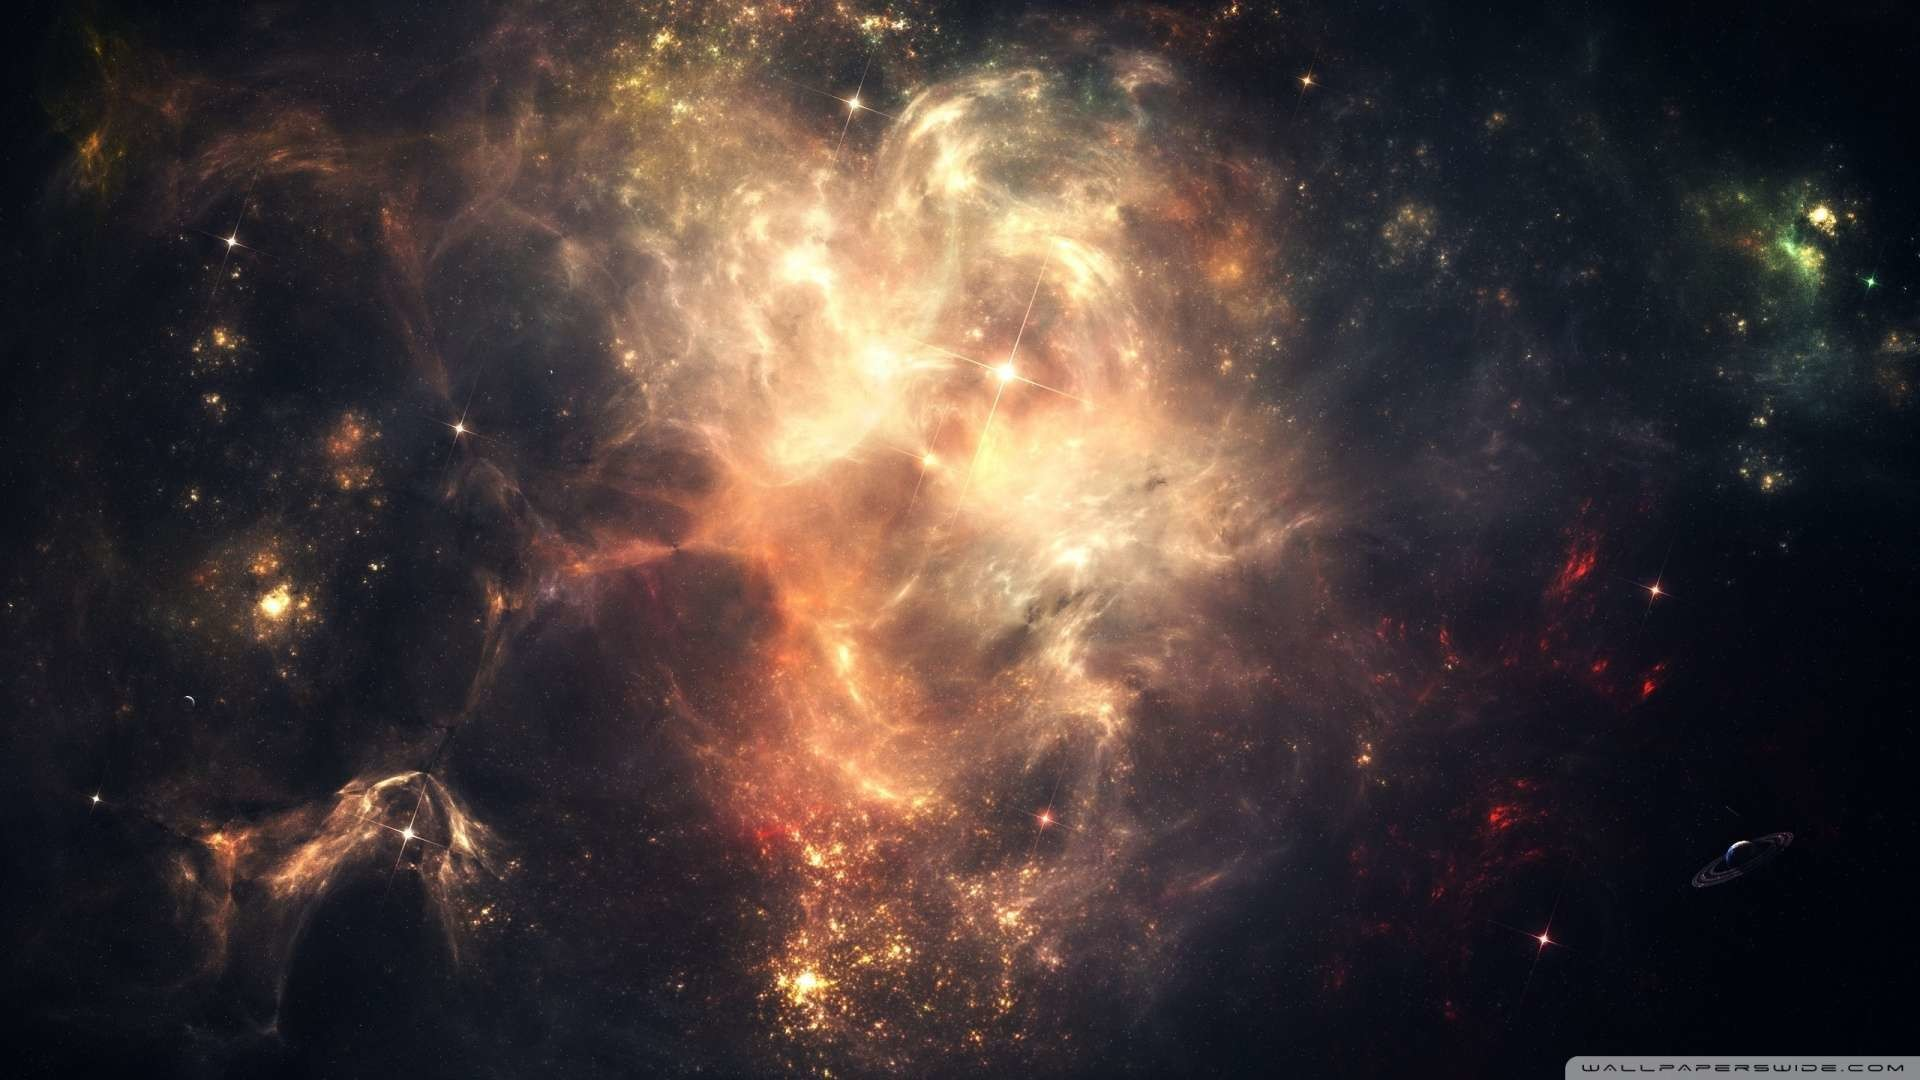 Wallpaper: Outer Space Nebulae Wallpaper 1080p HD. Upload at February .